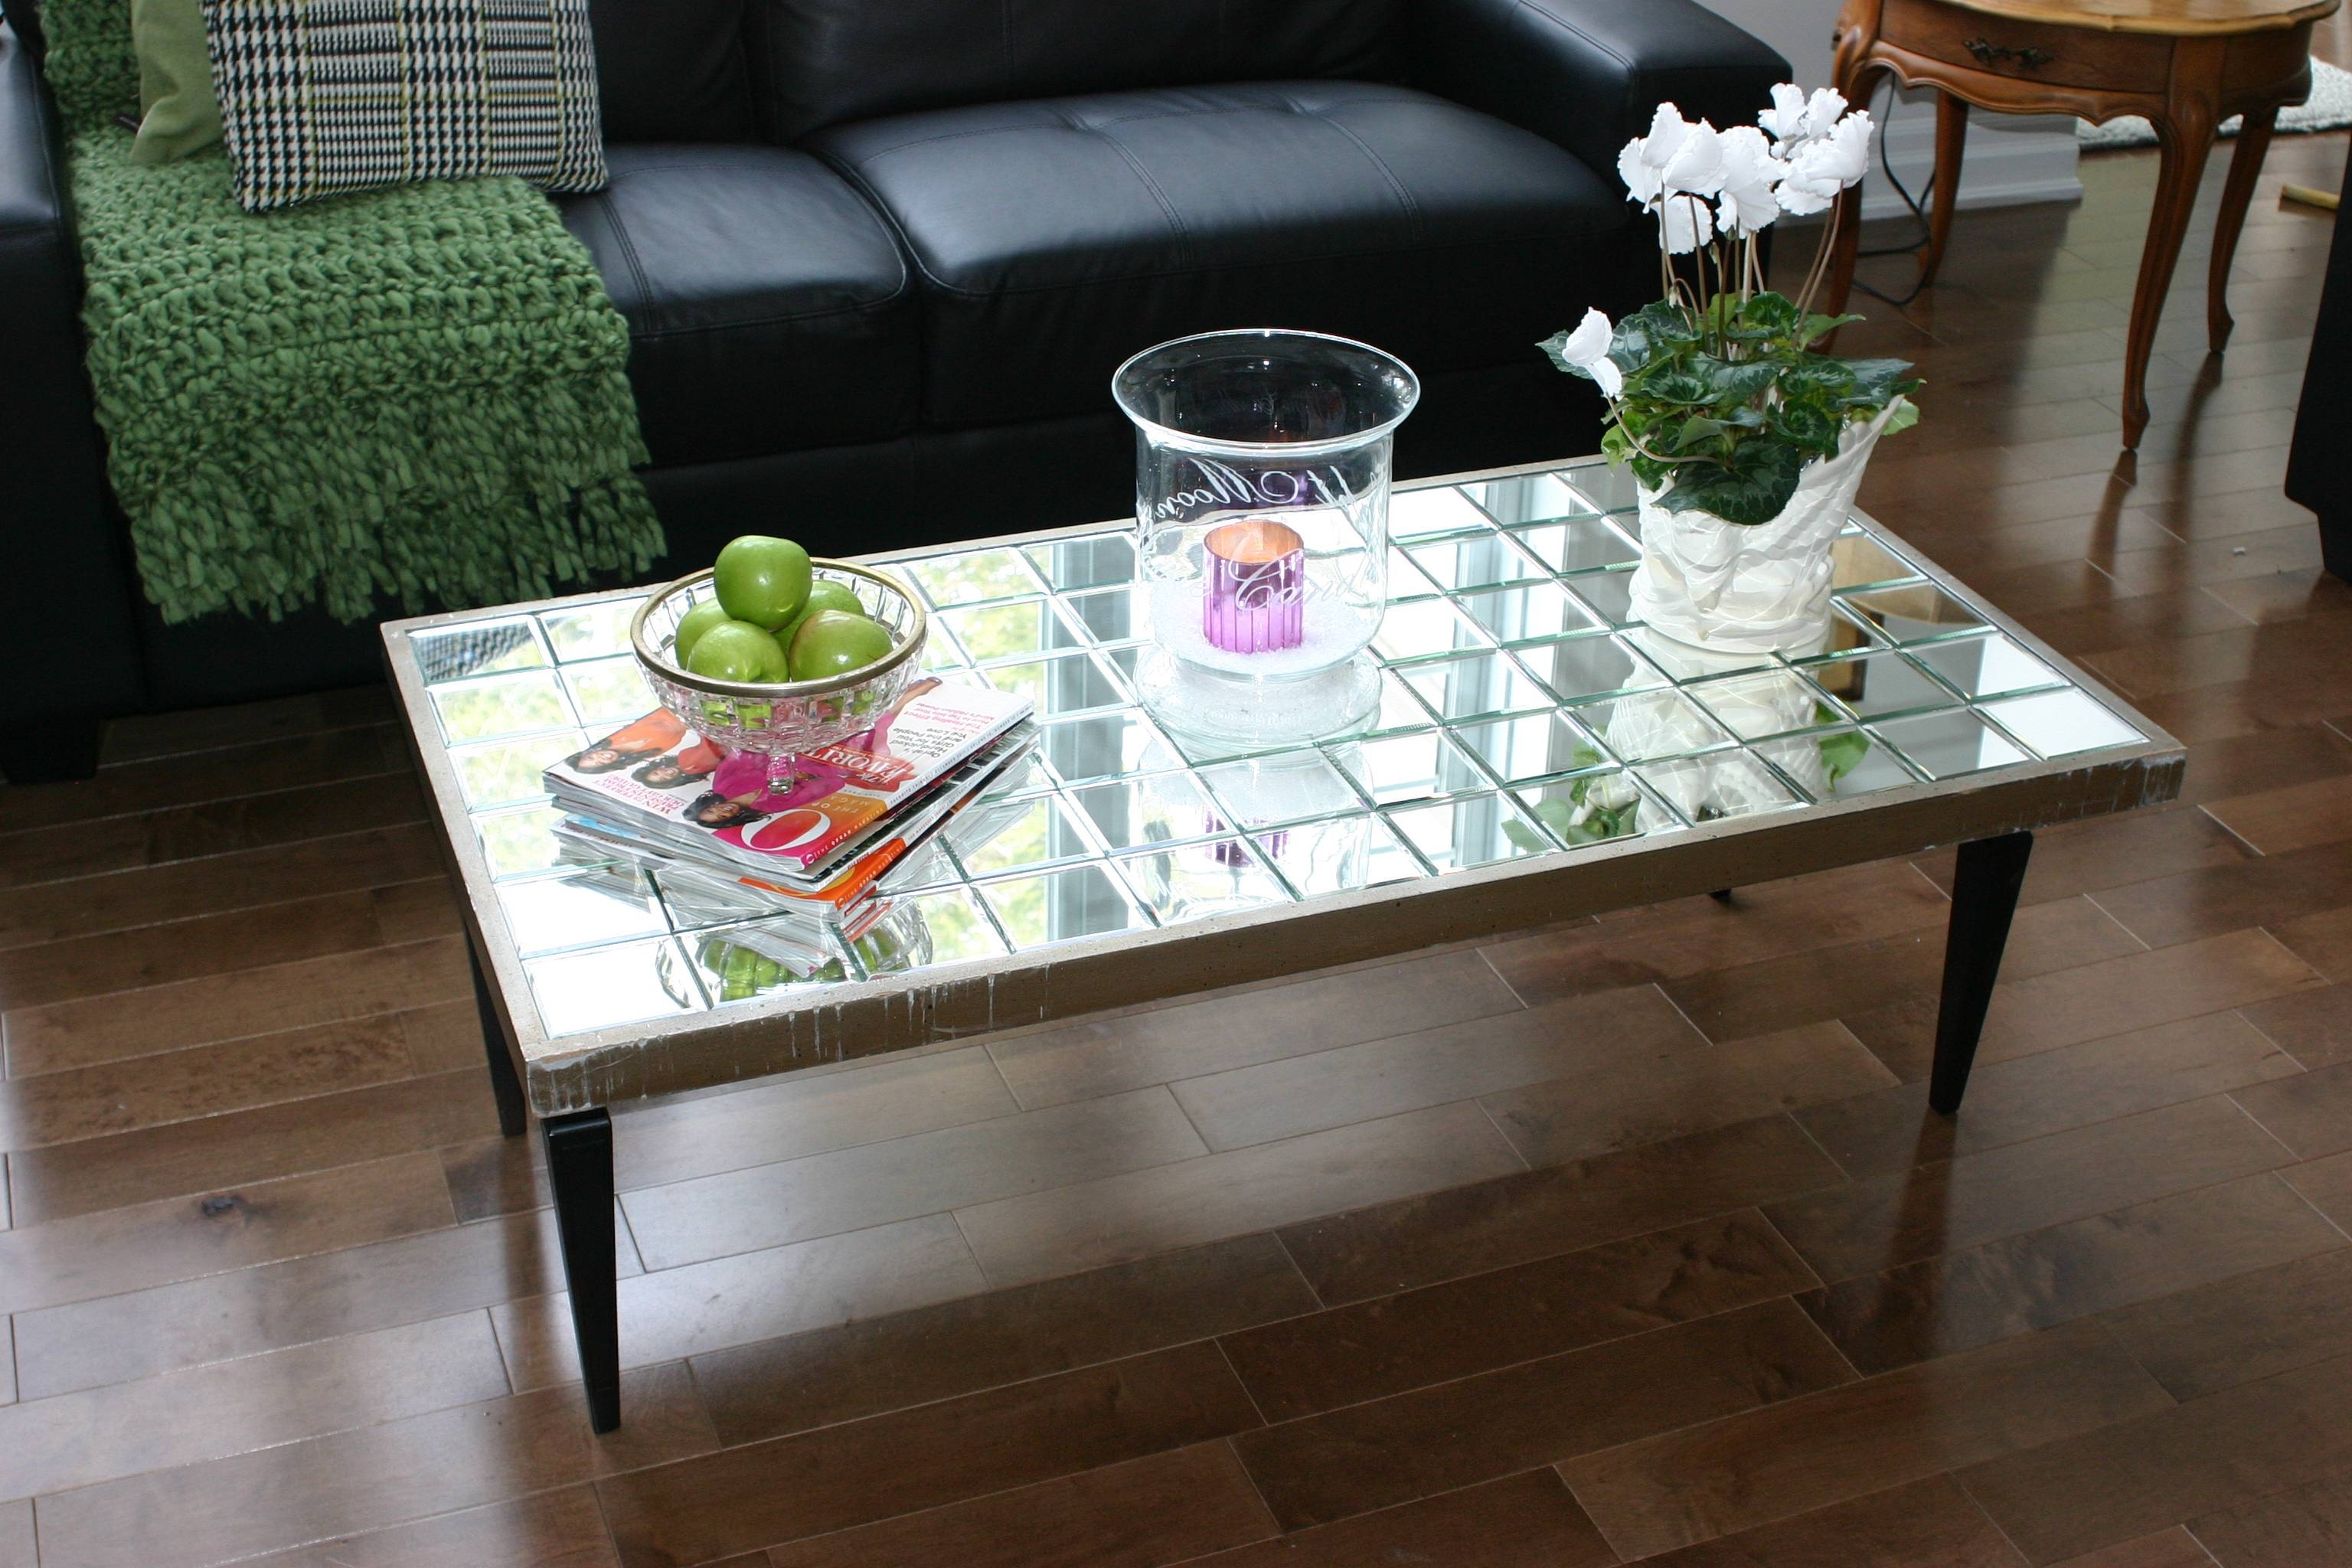 Diy Mirrored Coffee Table | pertaining to Occasional Tables Mirrors (Image 12 of 15)